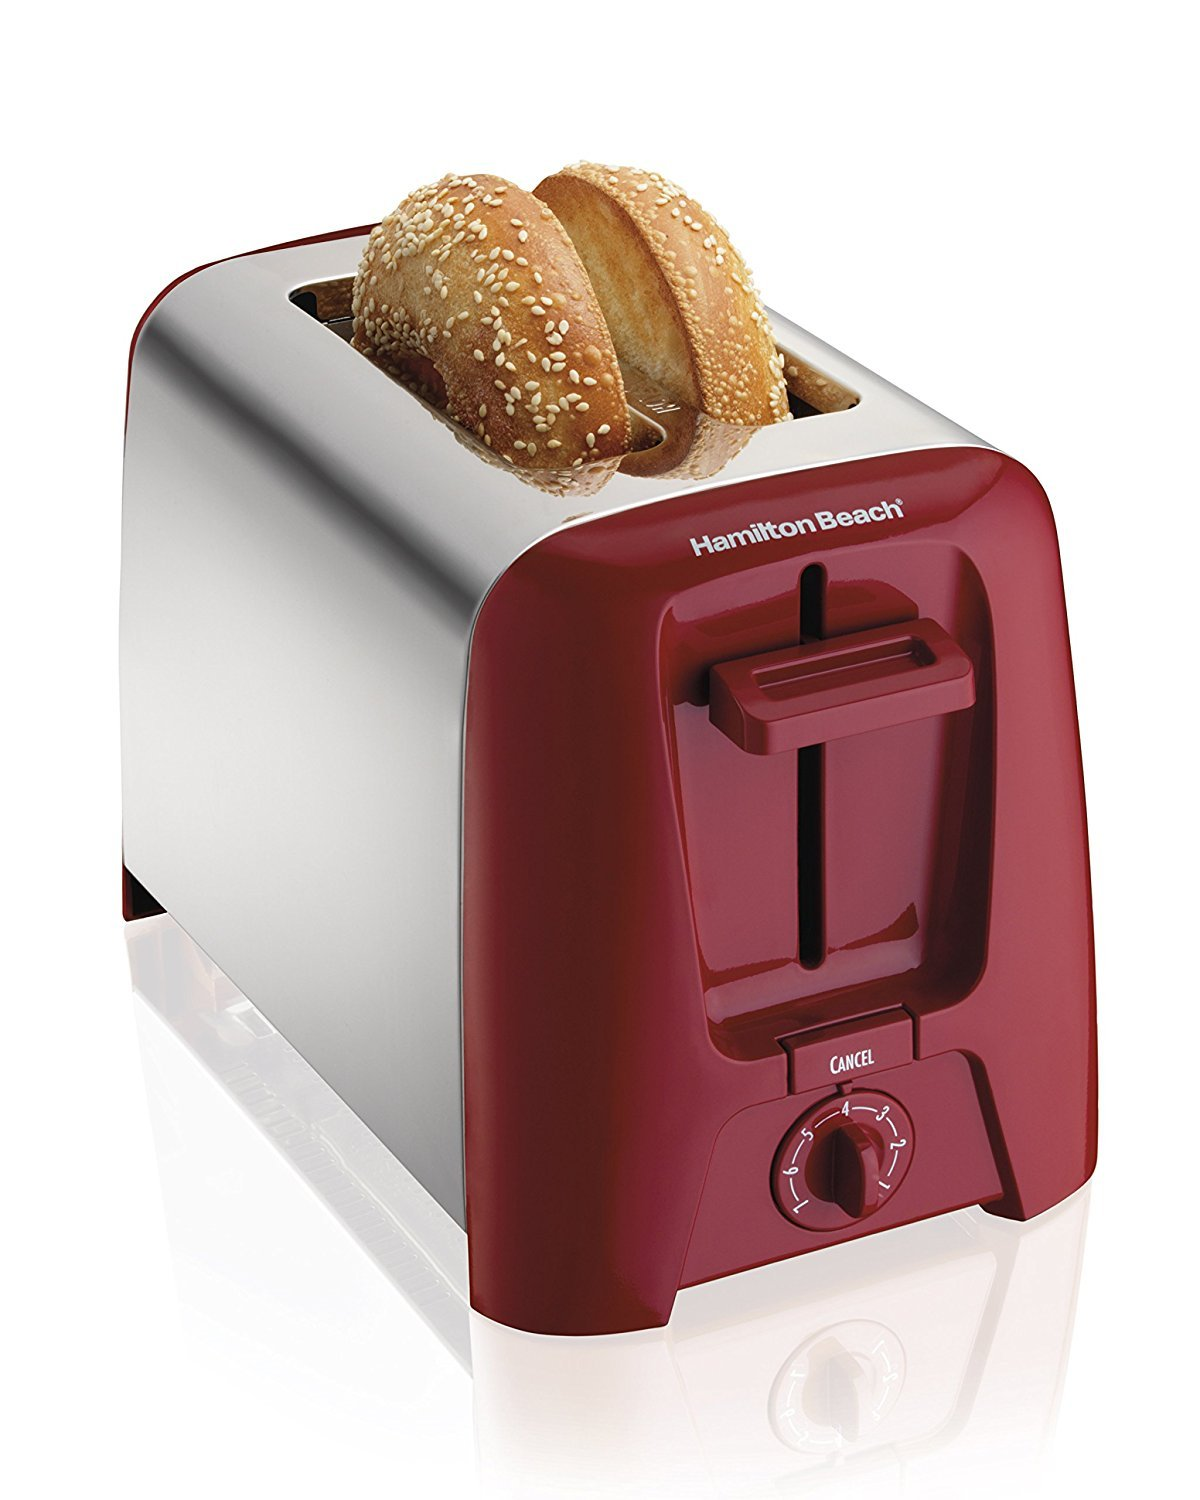 Hamilton Beach Cool Wall 2 Slice Wide Slot Toaster, Red & Stainless